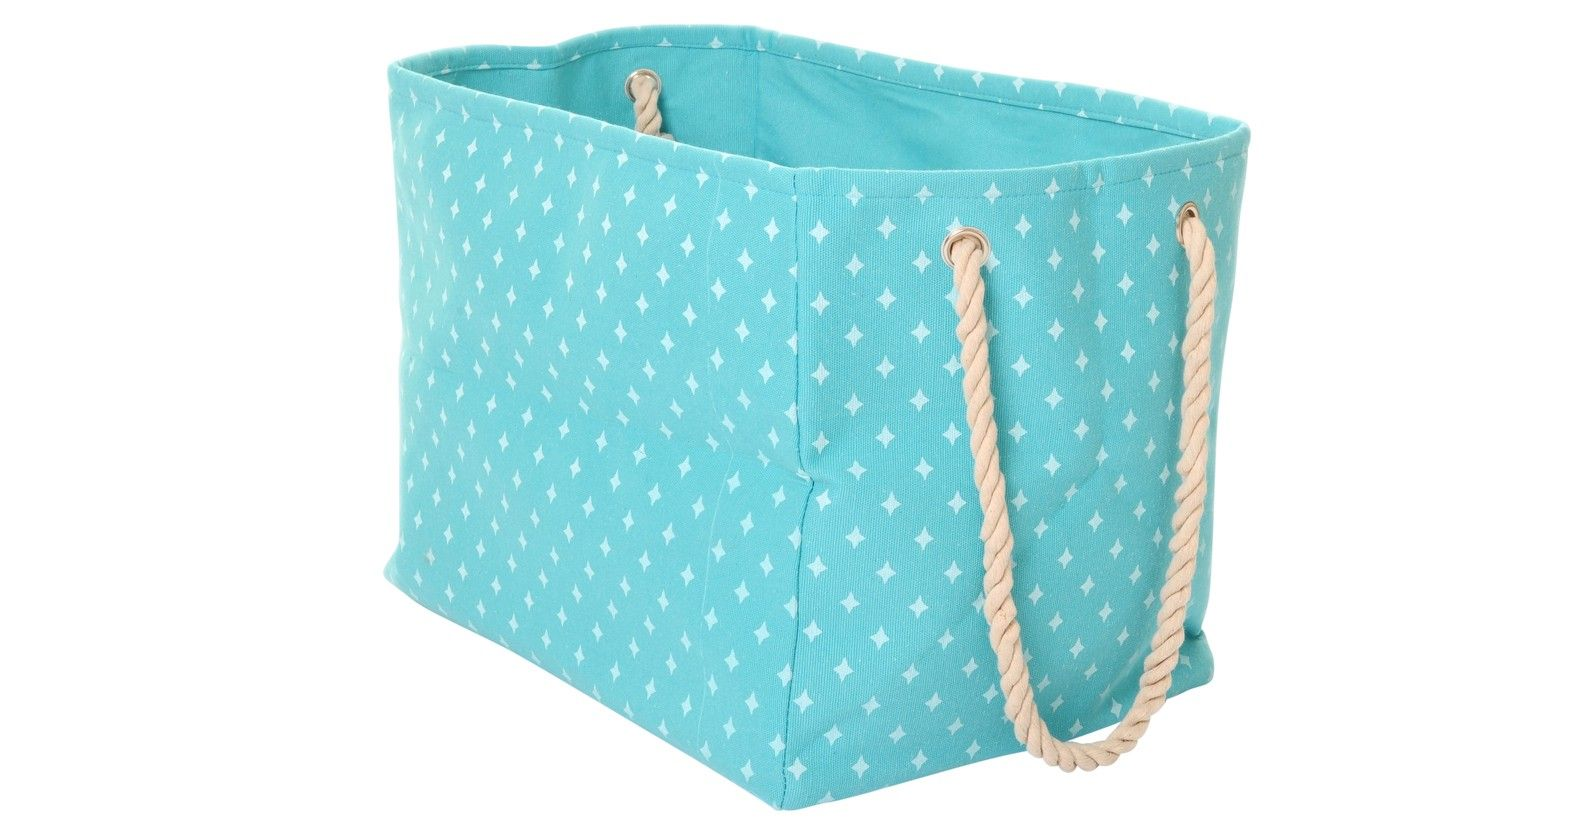 Laundry Bags With Handles Best Lovely For Laundry And Terrific For Toys Control The Clutter With